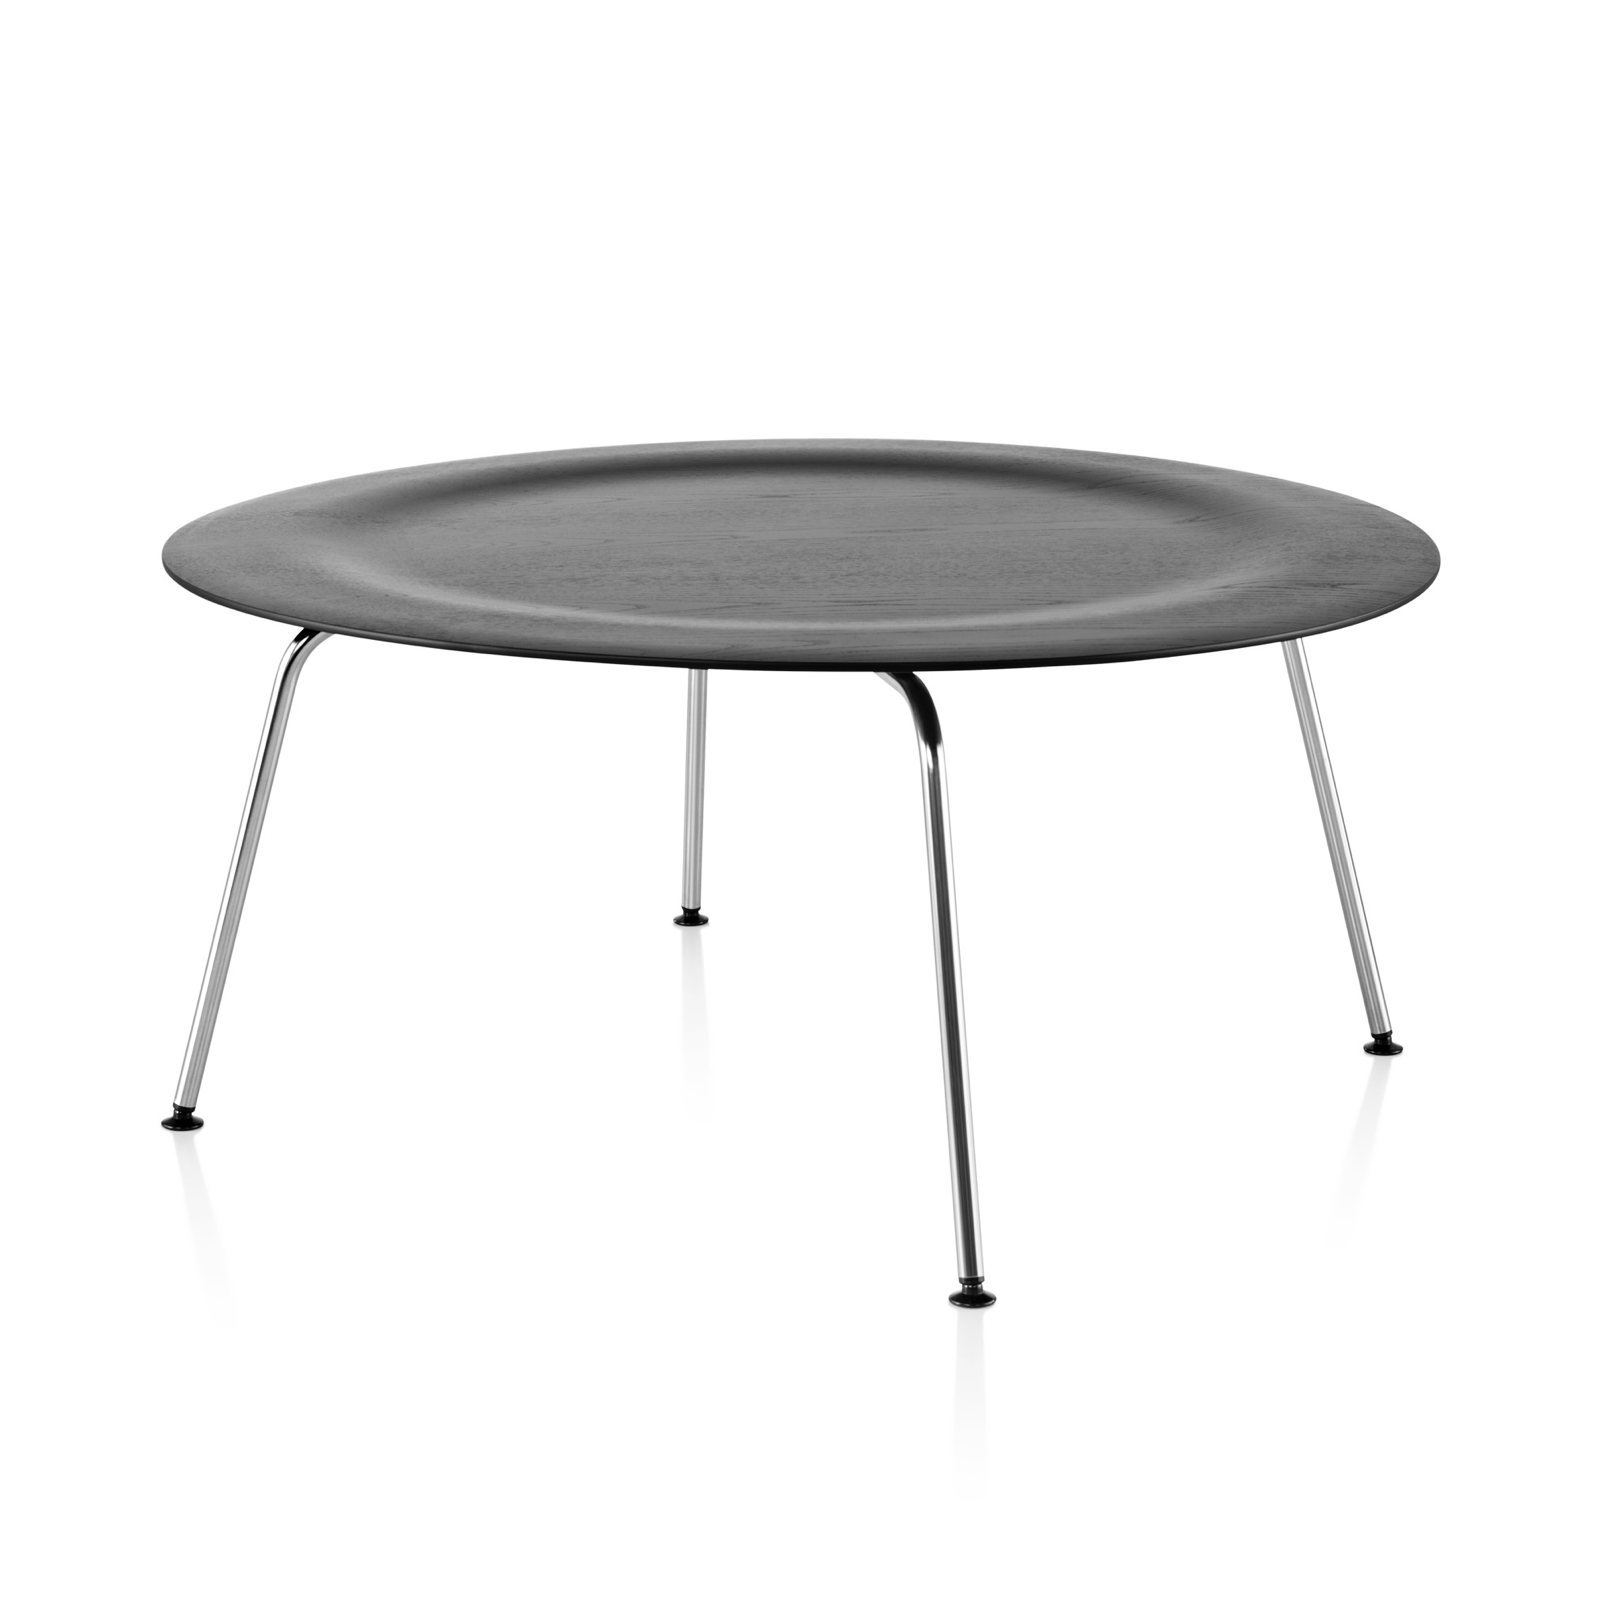 eames molded plywood coffee table metal basecharles & ray